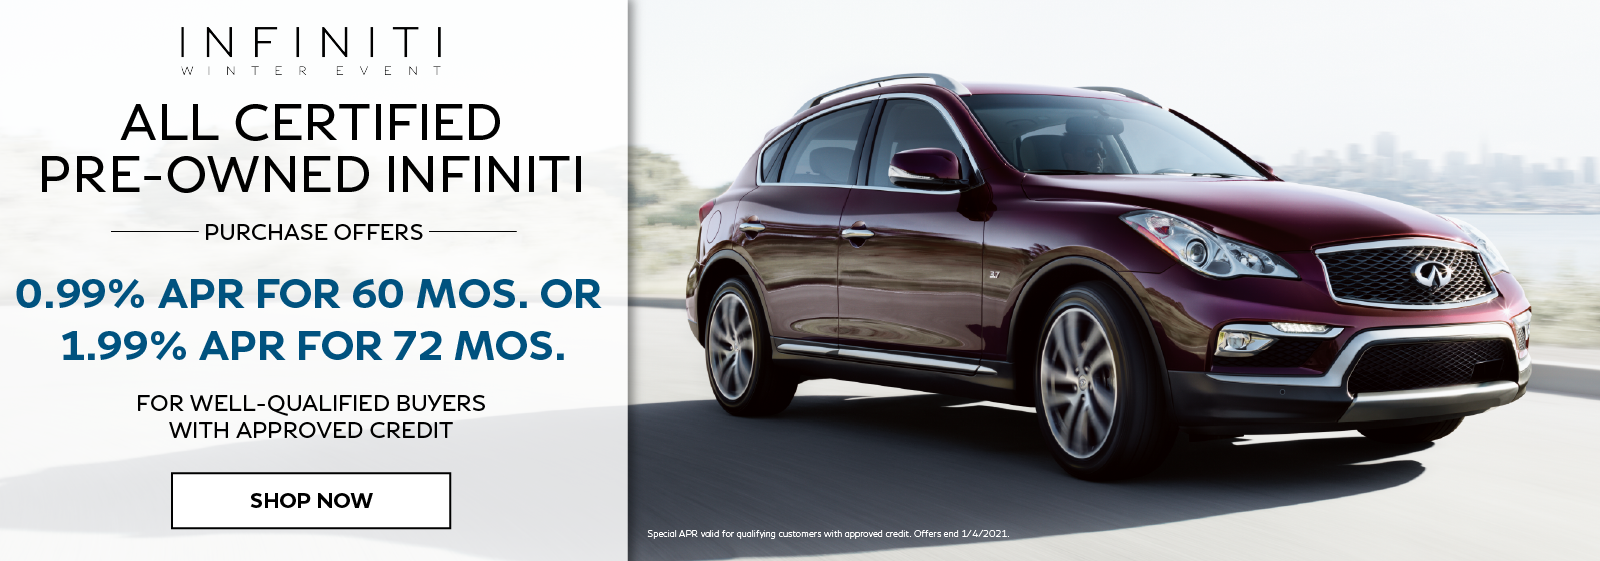 Well-qualified buyers get 0.99% APR for 60 months or 1.99% APR for 72 months on all certified pre-owned INFINITI. Click to shop now.